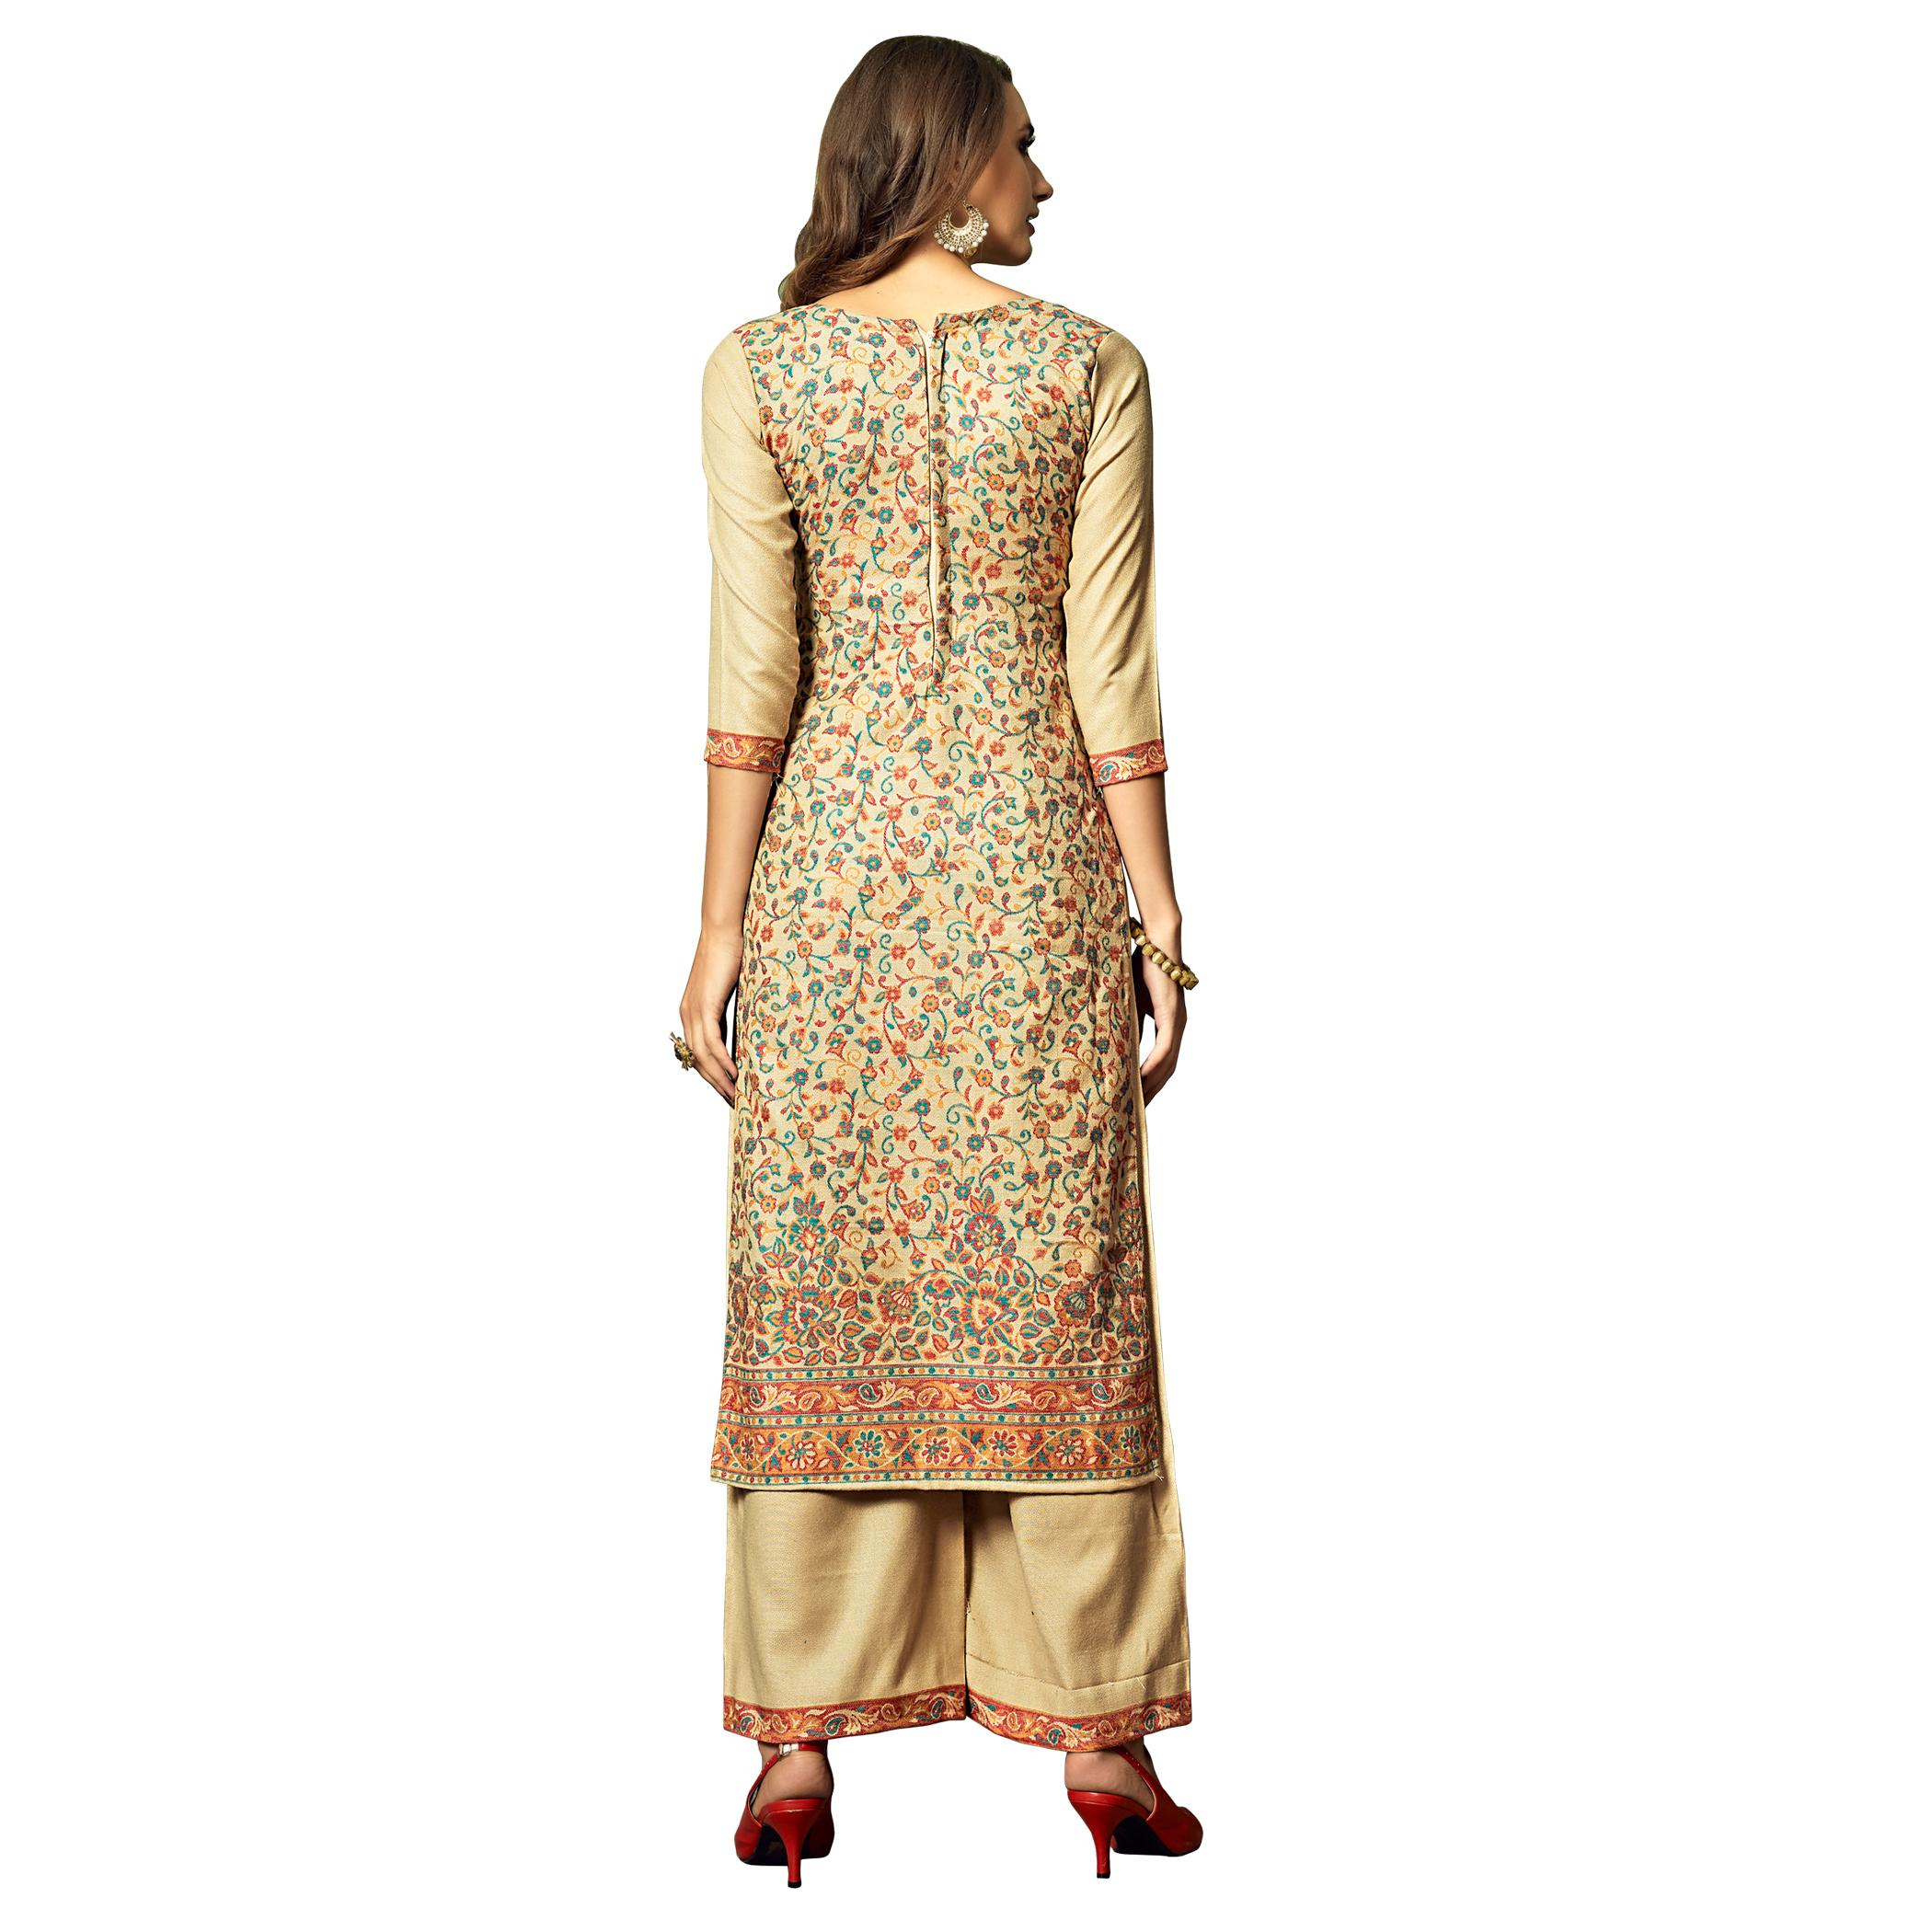 Safaa - Beige Colored Party Wear Printed Rayon Acro Wool Dress Material